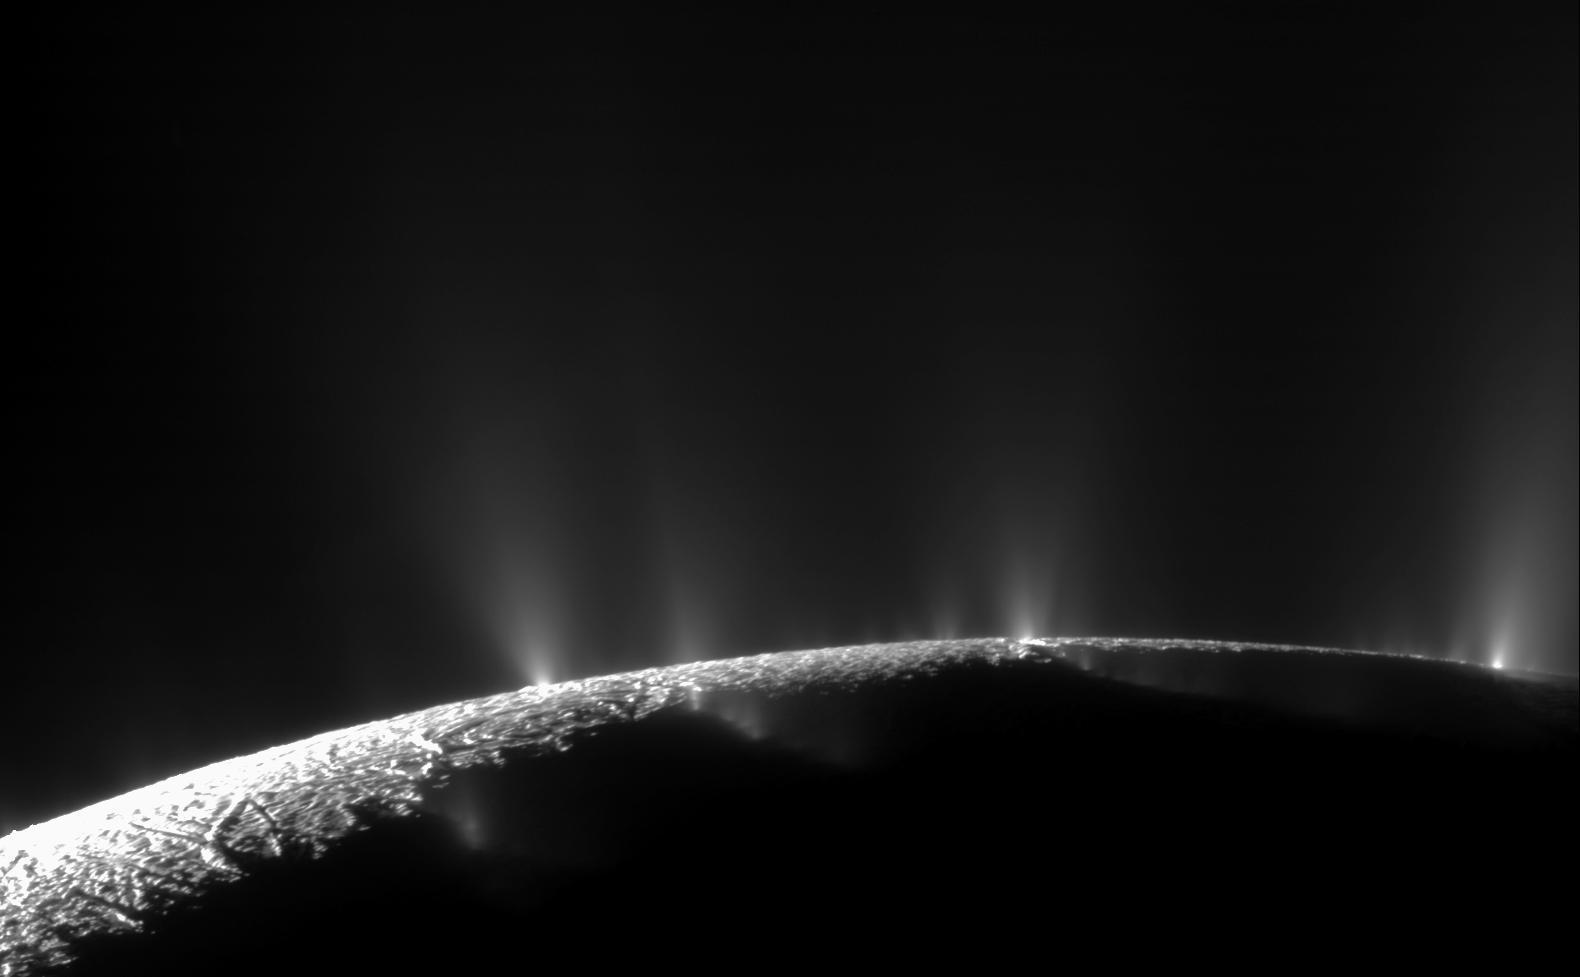 A plume sprays water ice and vapor from the south polar region of Saturn's moon Enceladus